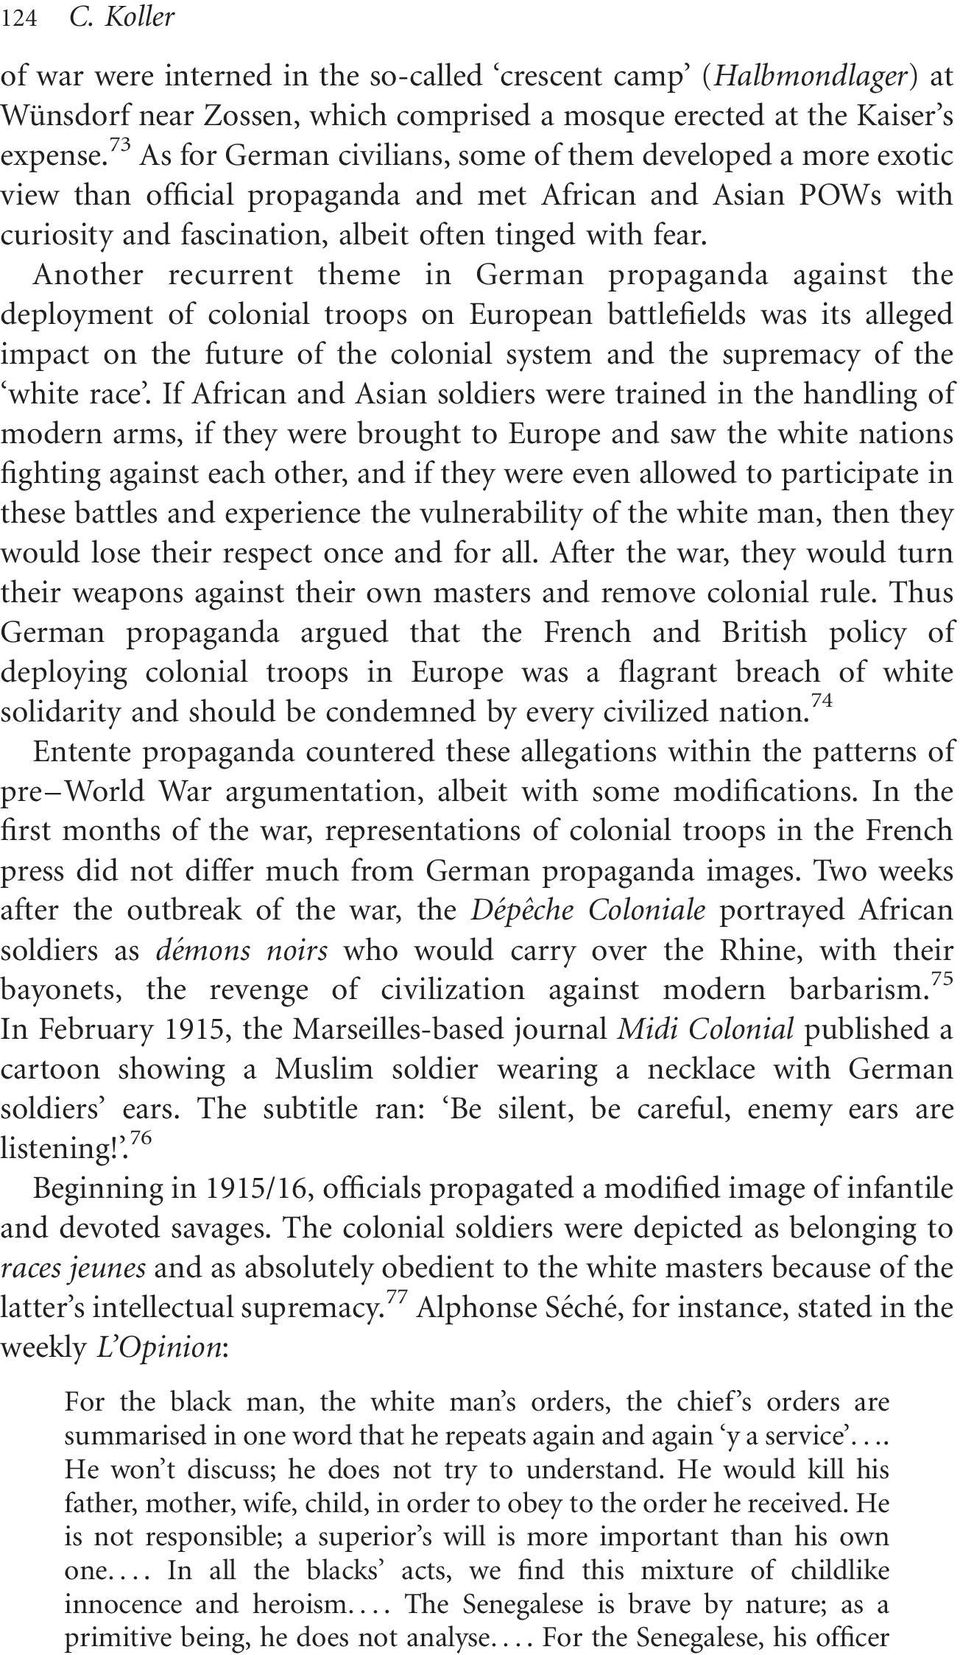 Another recurrent theme in German propaganda against the deployment of colonial troops on European battlefields was its alleged impact on the future of the colonial system and the supremacy of the